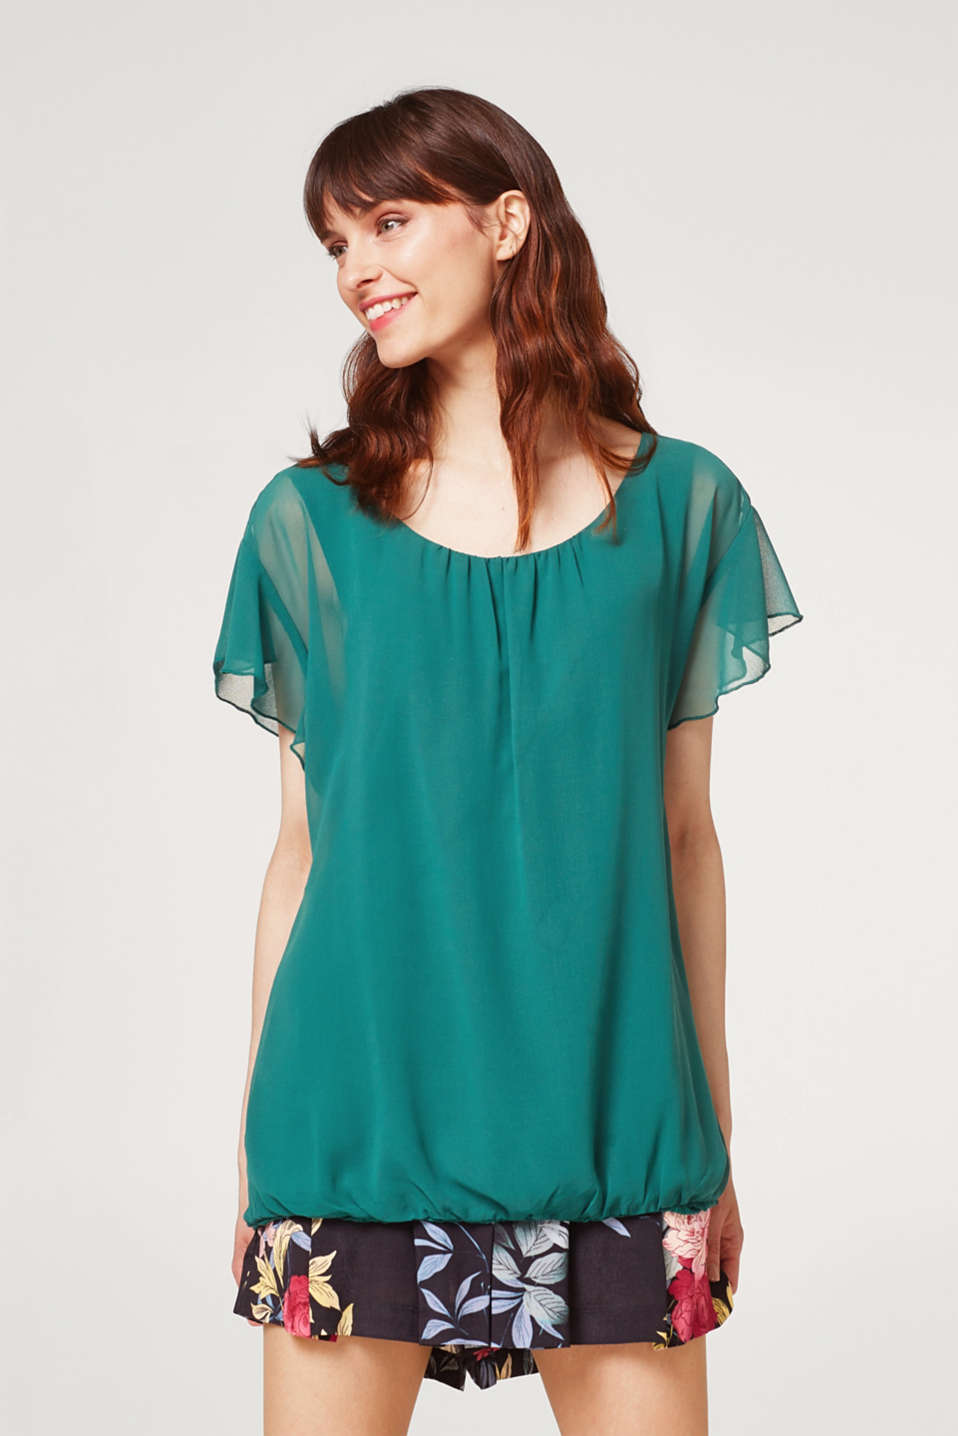 Esprit - Blouse top in chiffon with flounce sleeves